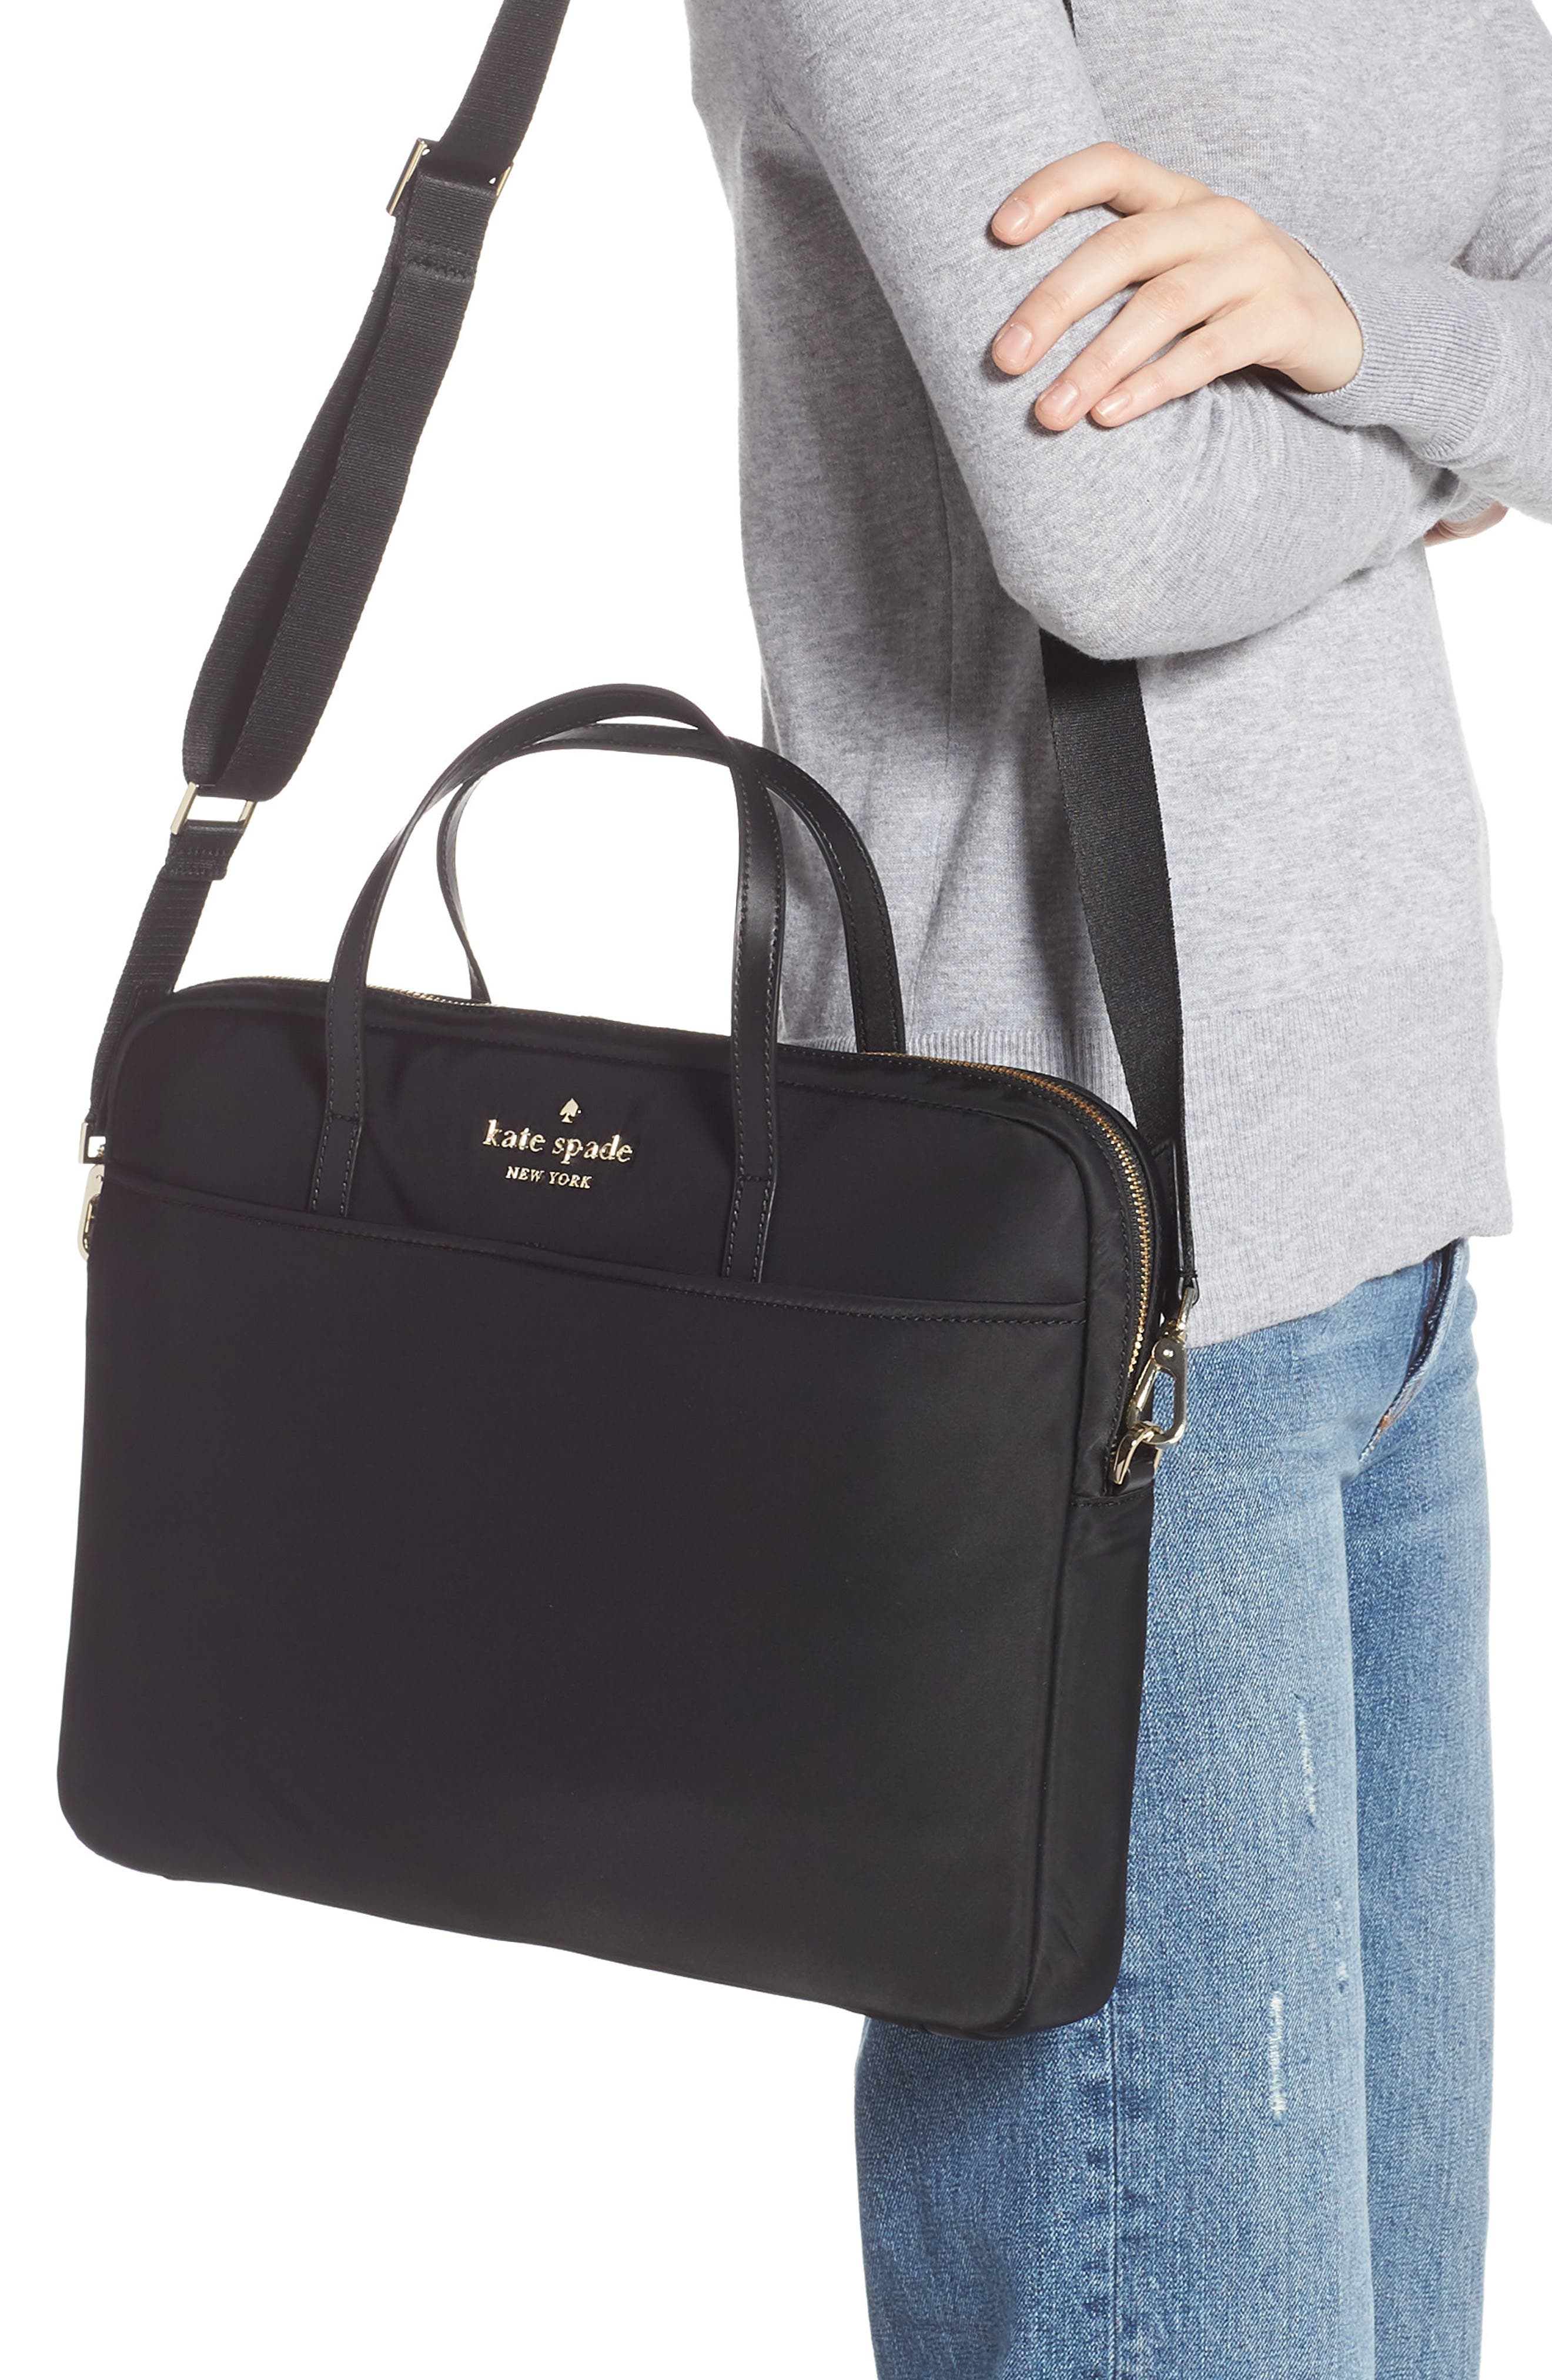 KATE SPADE NEW YORK, uni slim laptop commuter bag, Alternate thumbnail 2, color, BLACK